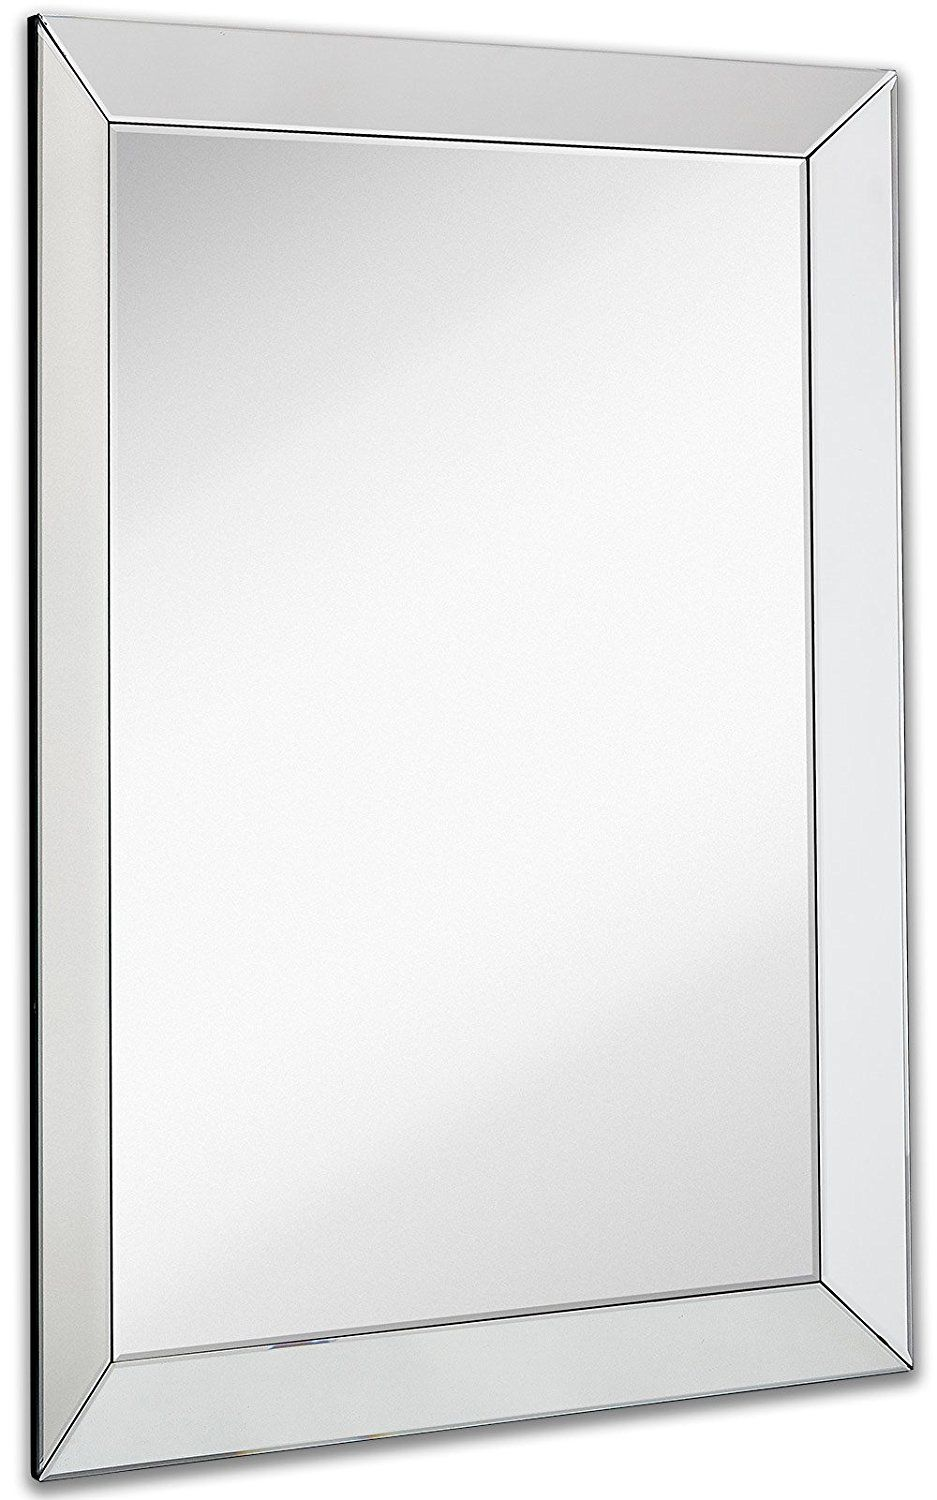 Art Exhibition Amazon Large Framed Wall Mirror with Inch Angled Beveled Mirror Frame